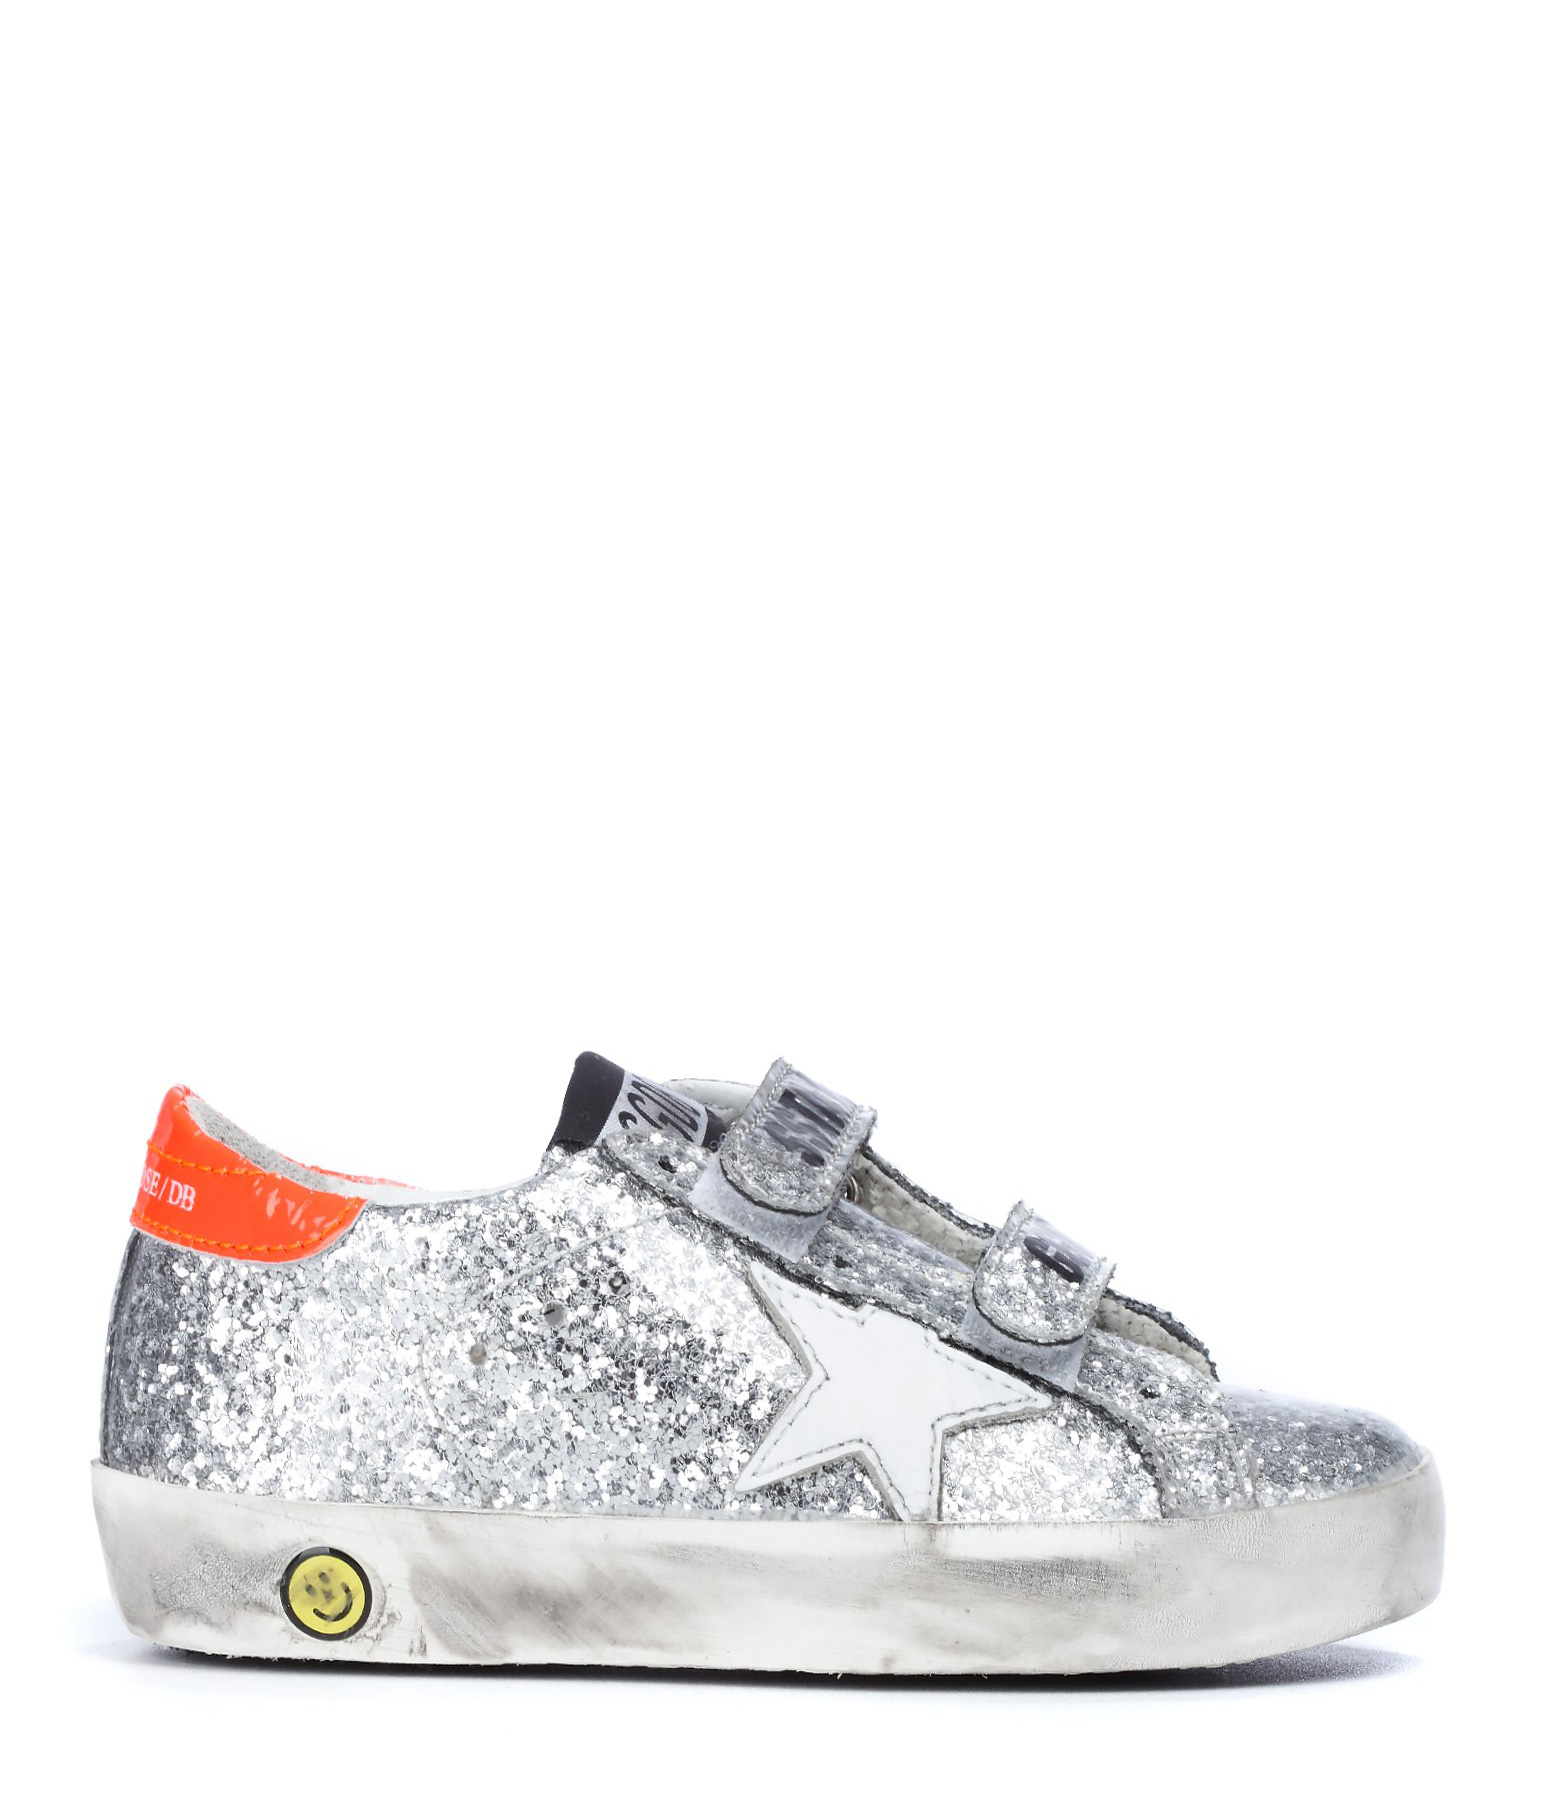 Sneakers Bébé Superstar Old School Silver Glitter White Star